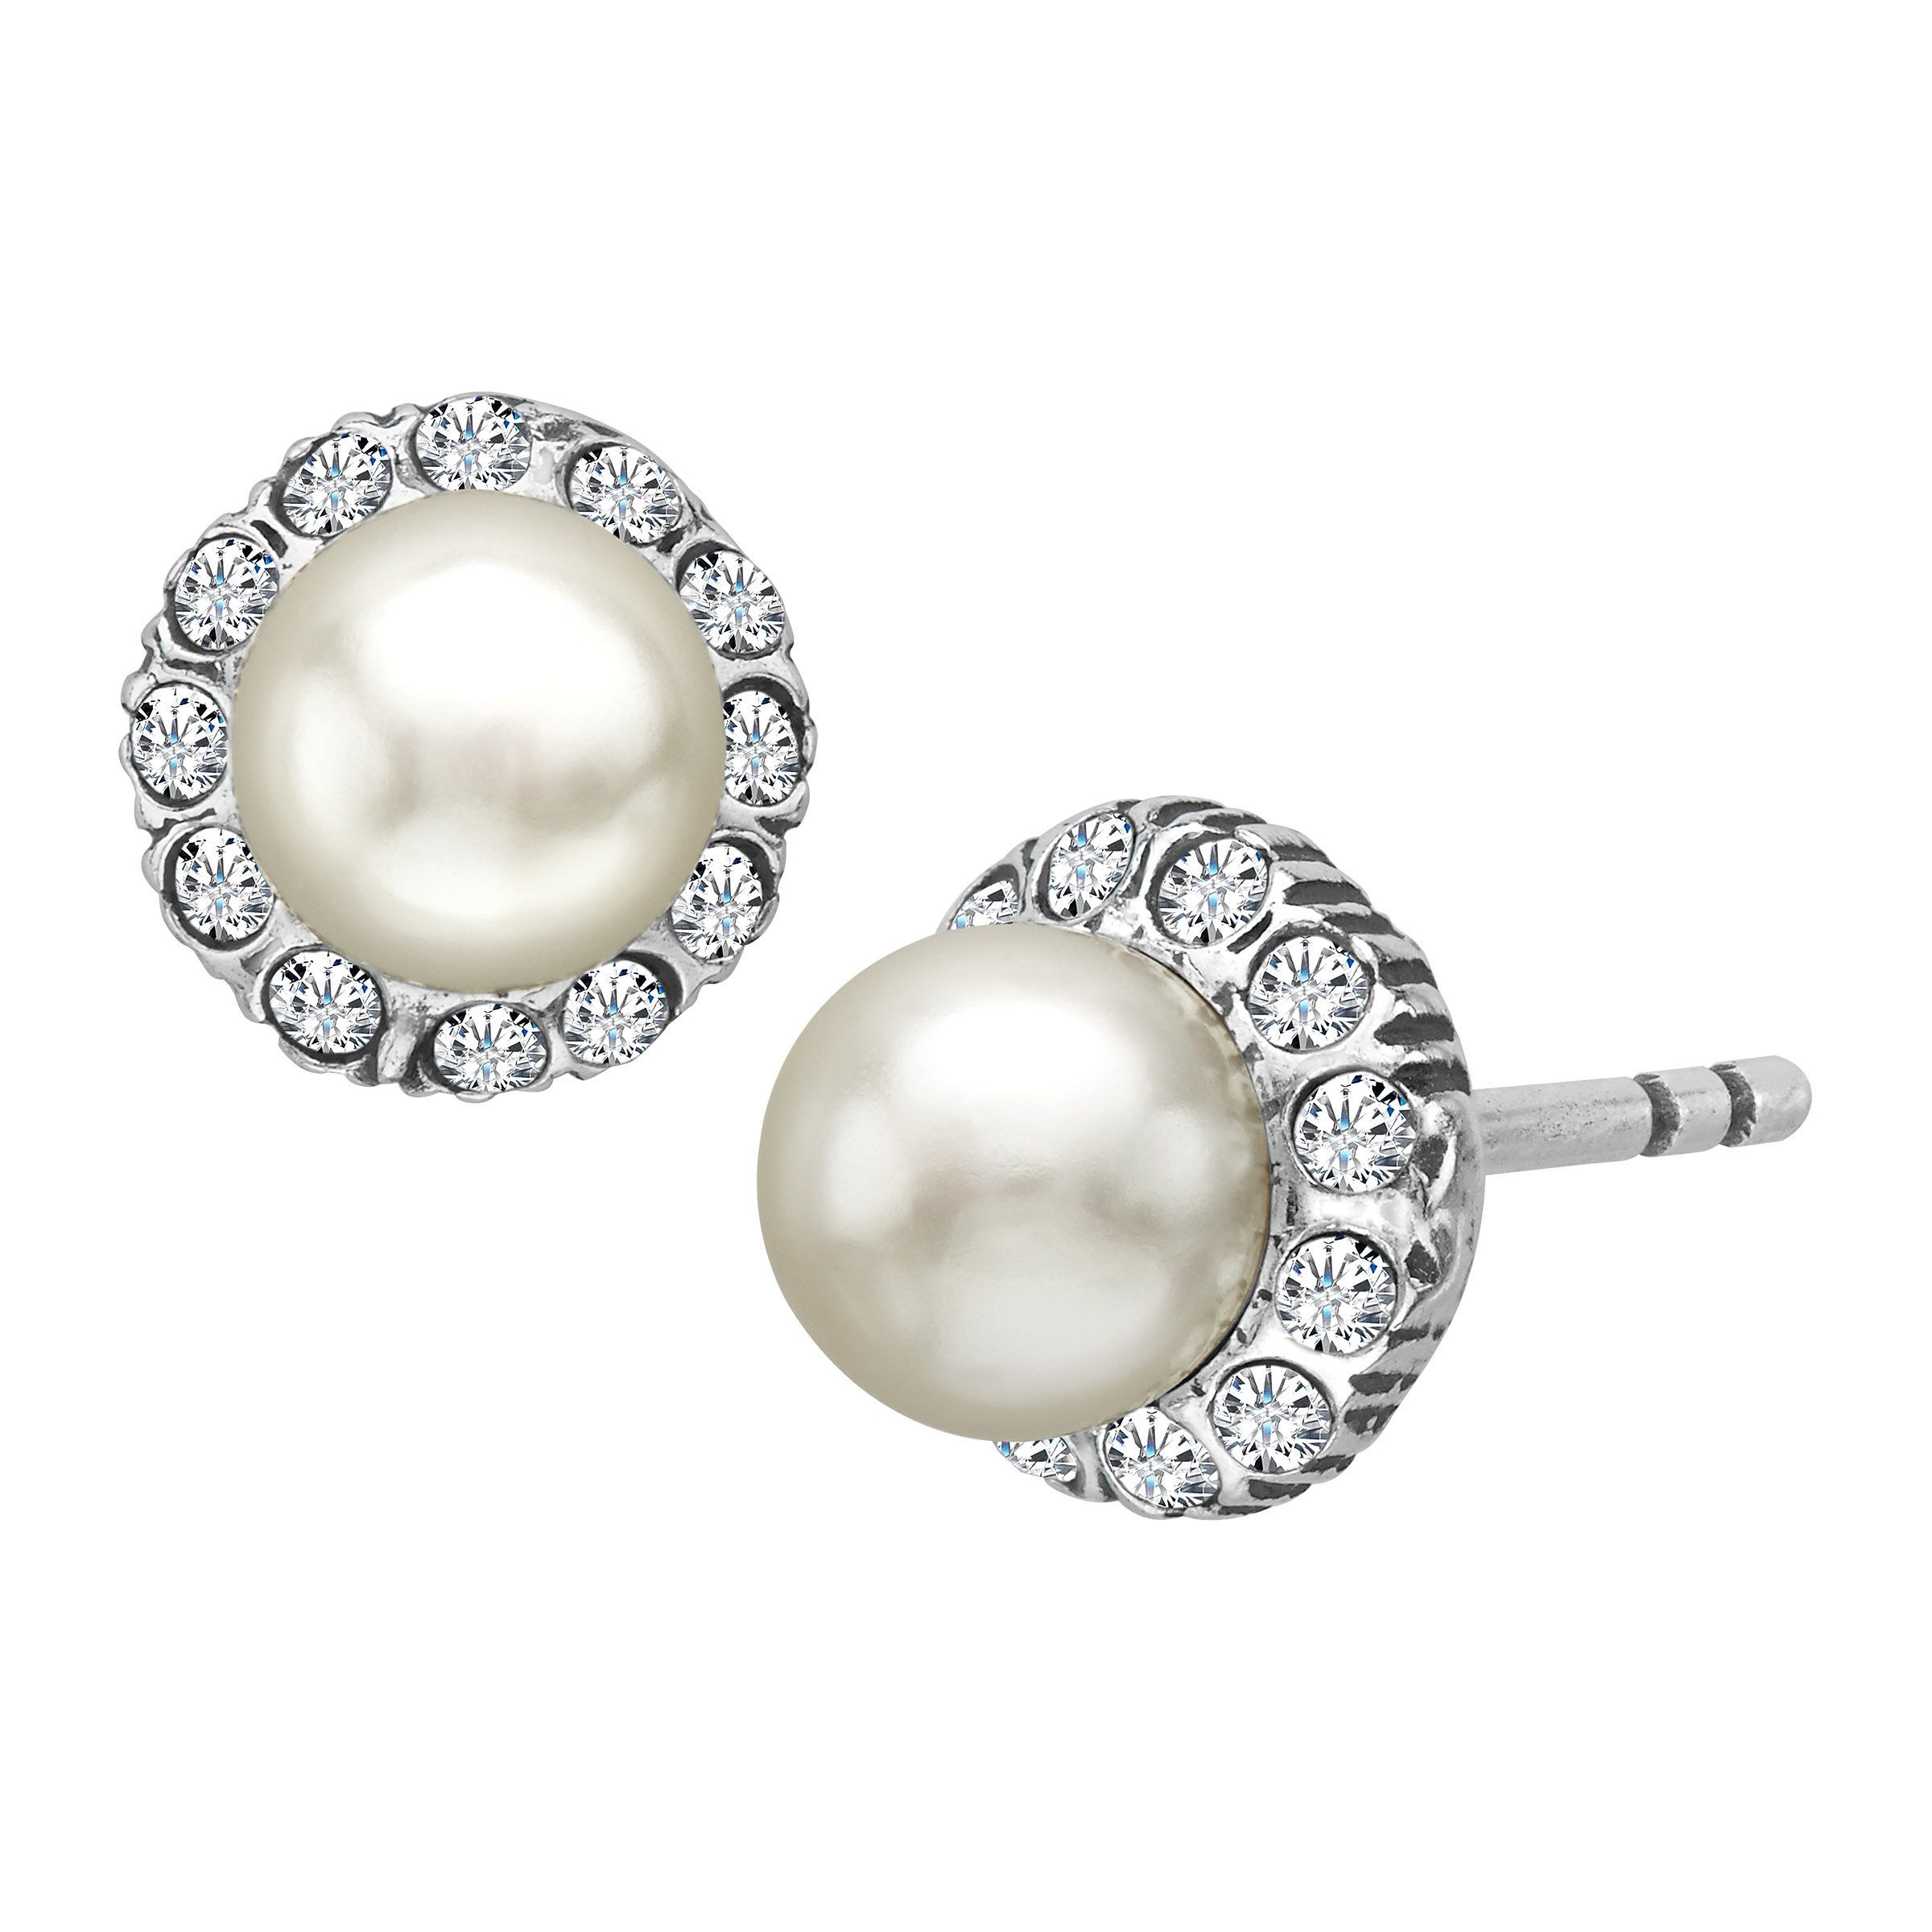 Van Kempen Victorian Simulated Pearl Earrings With Swarovski Crystals In Silver